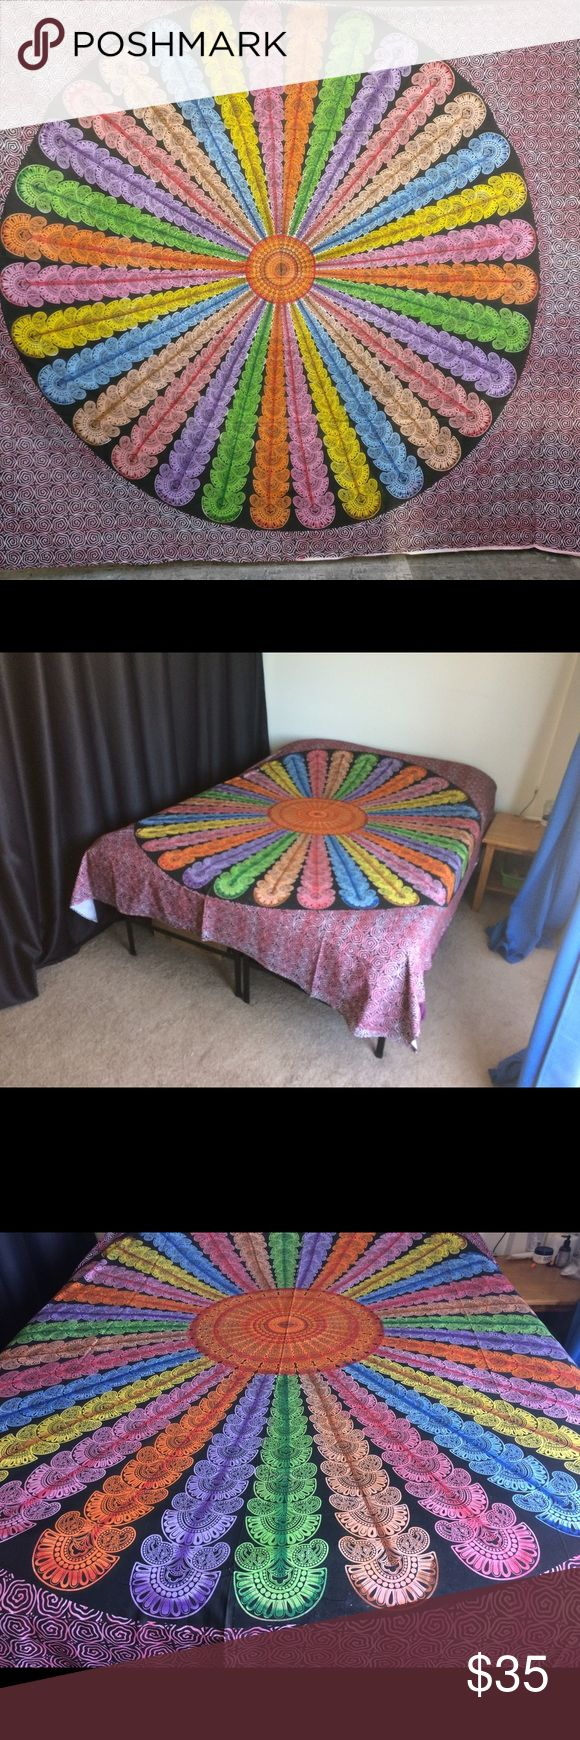 "🦄 rainbow Wall Decor  Bed Spread Tapestry Mandala Brand new.Handmade with natural dyes.  Uses: bed spread, couch spread, curtains, wallhangings, Celling decor, beach mat, picnic mat, table cloth, yoga & meditation.  Size: 90"" X 84"" inch ( Queen bed)   Material;100% Cotton  Wash: cold wash   #kidsroom #kidsroomdecor #kidsroomideas #teensroom #dormroom #dormroomideas #kids #  #tapestry #mandala #birthdaygift, #beachtowel #bedspread #walldecor #gift #boho #hippy #gypsy #wallhanging #yogamat…"